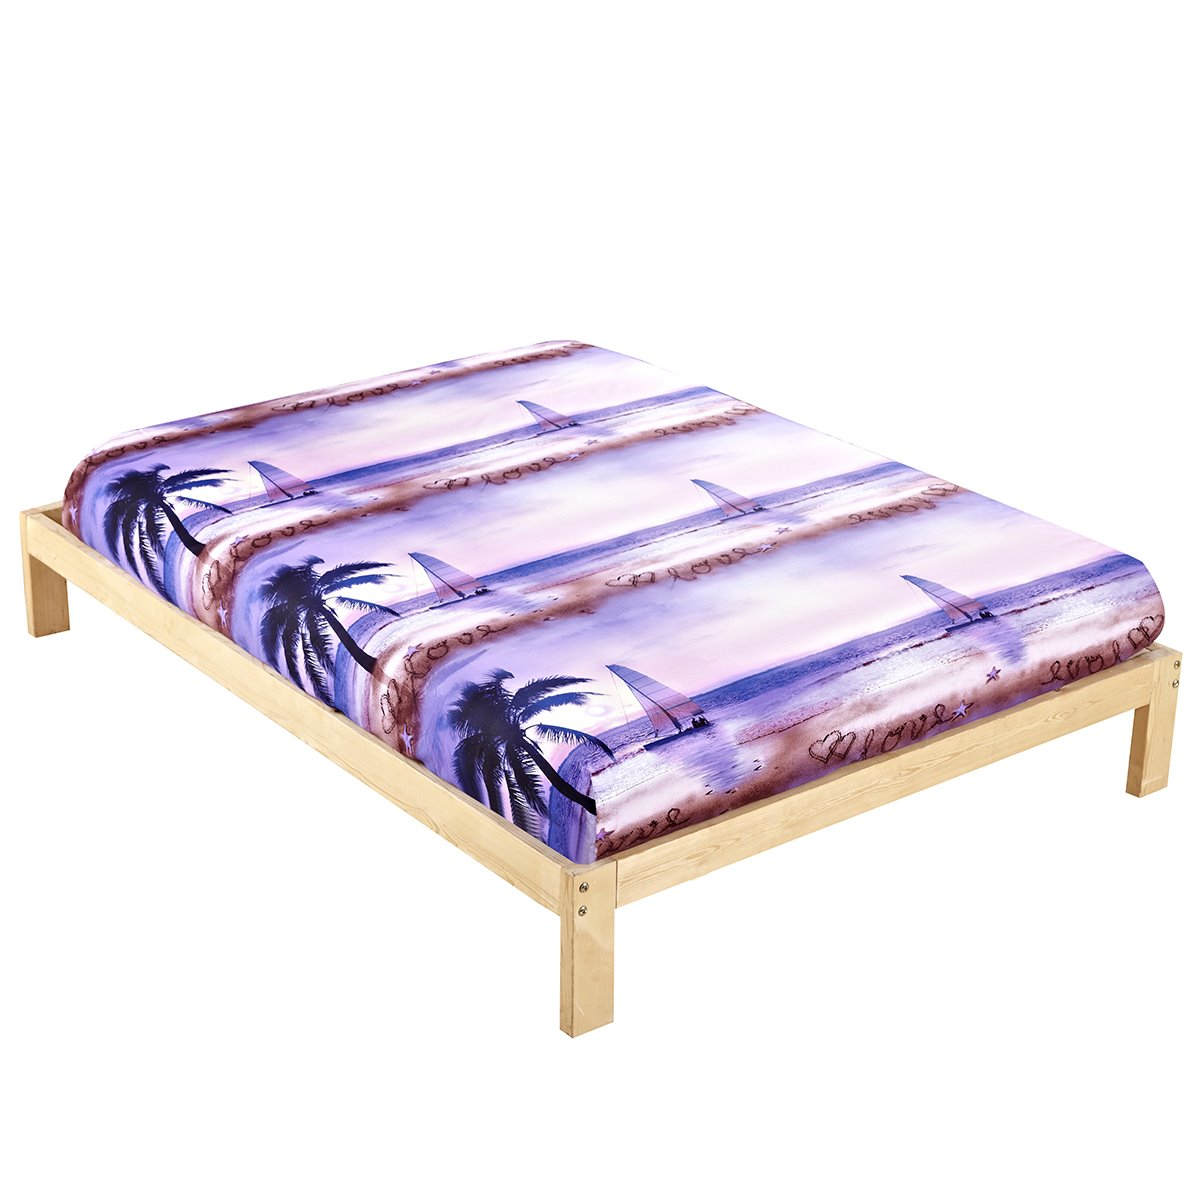 Coconut Tree and Sailing Ship Printing Cotton Fitted Sheet